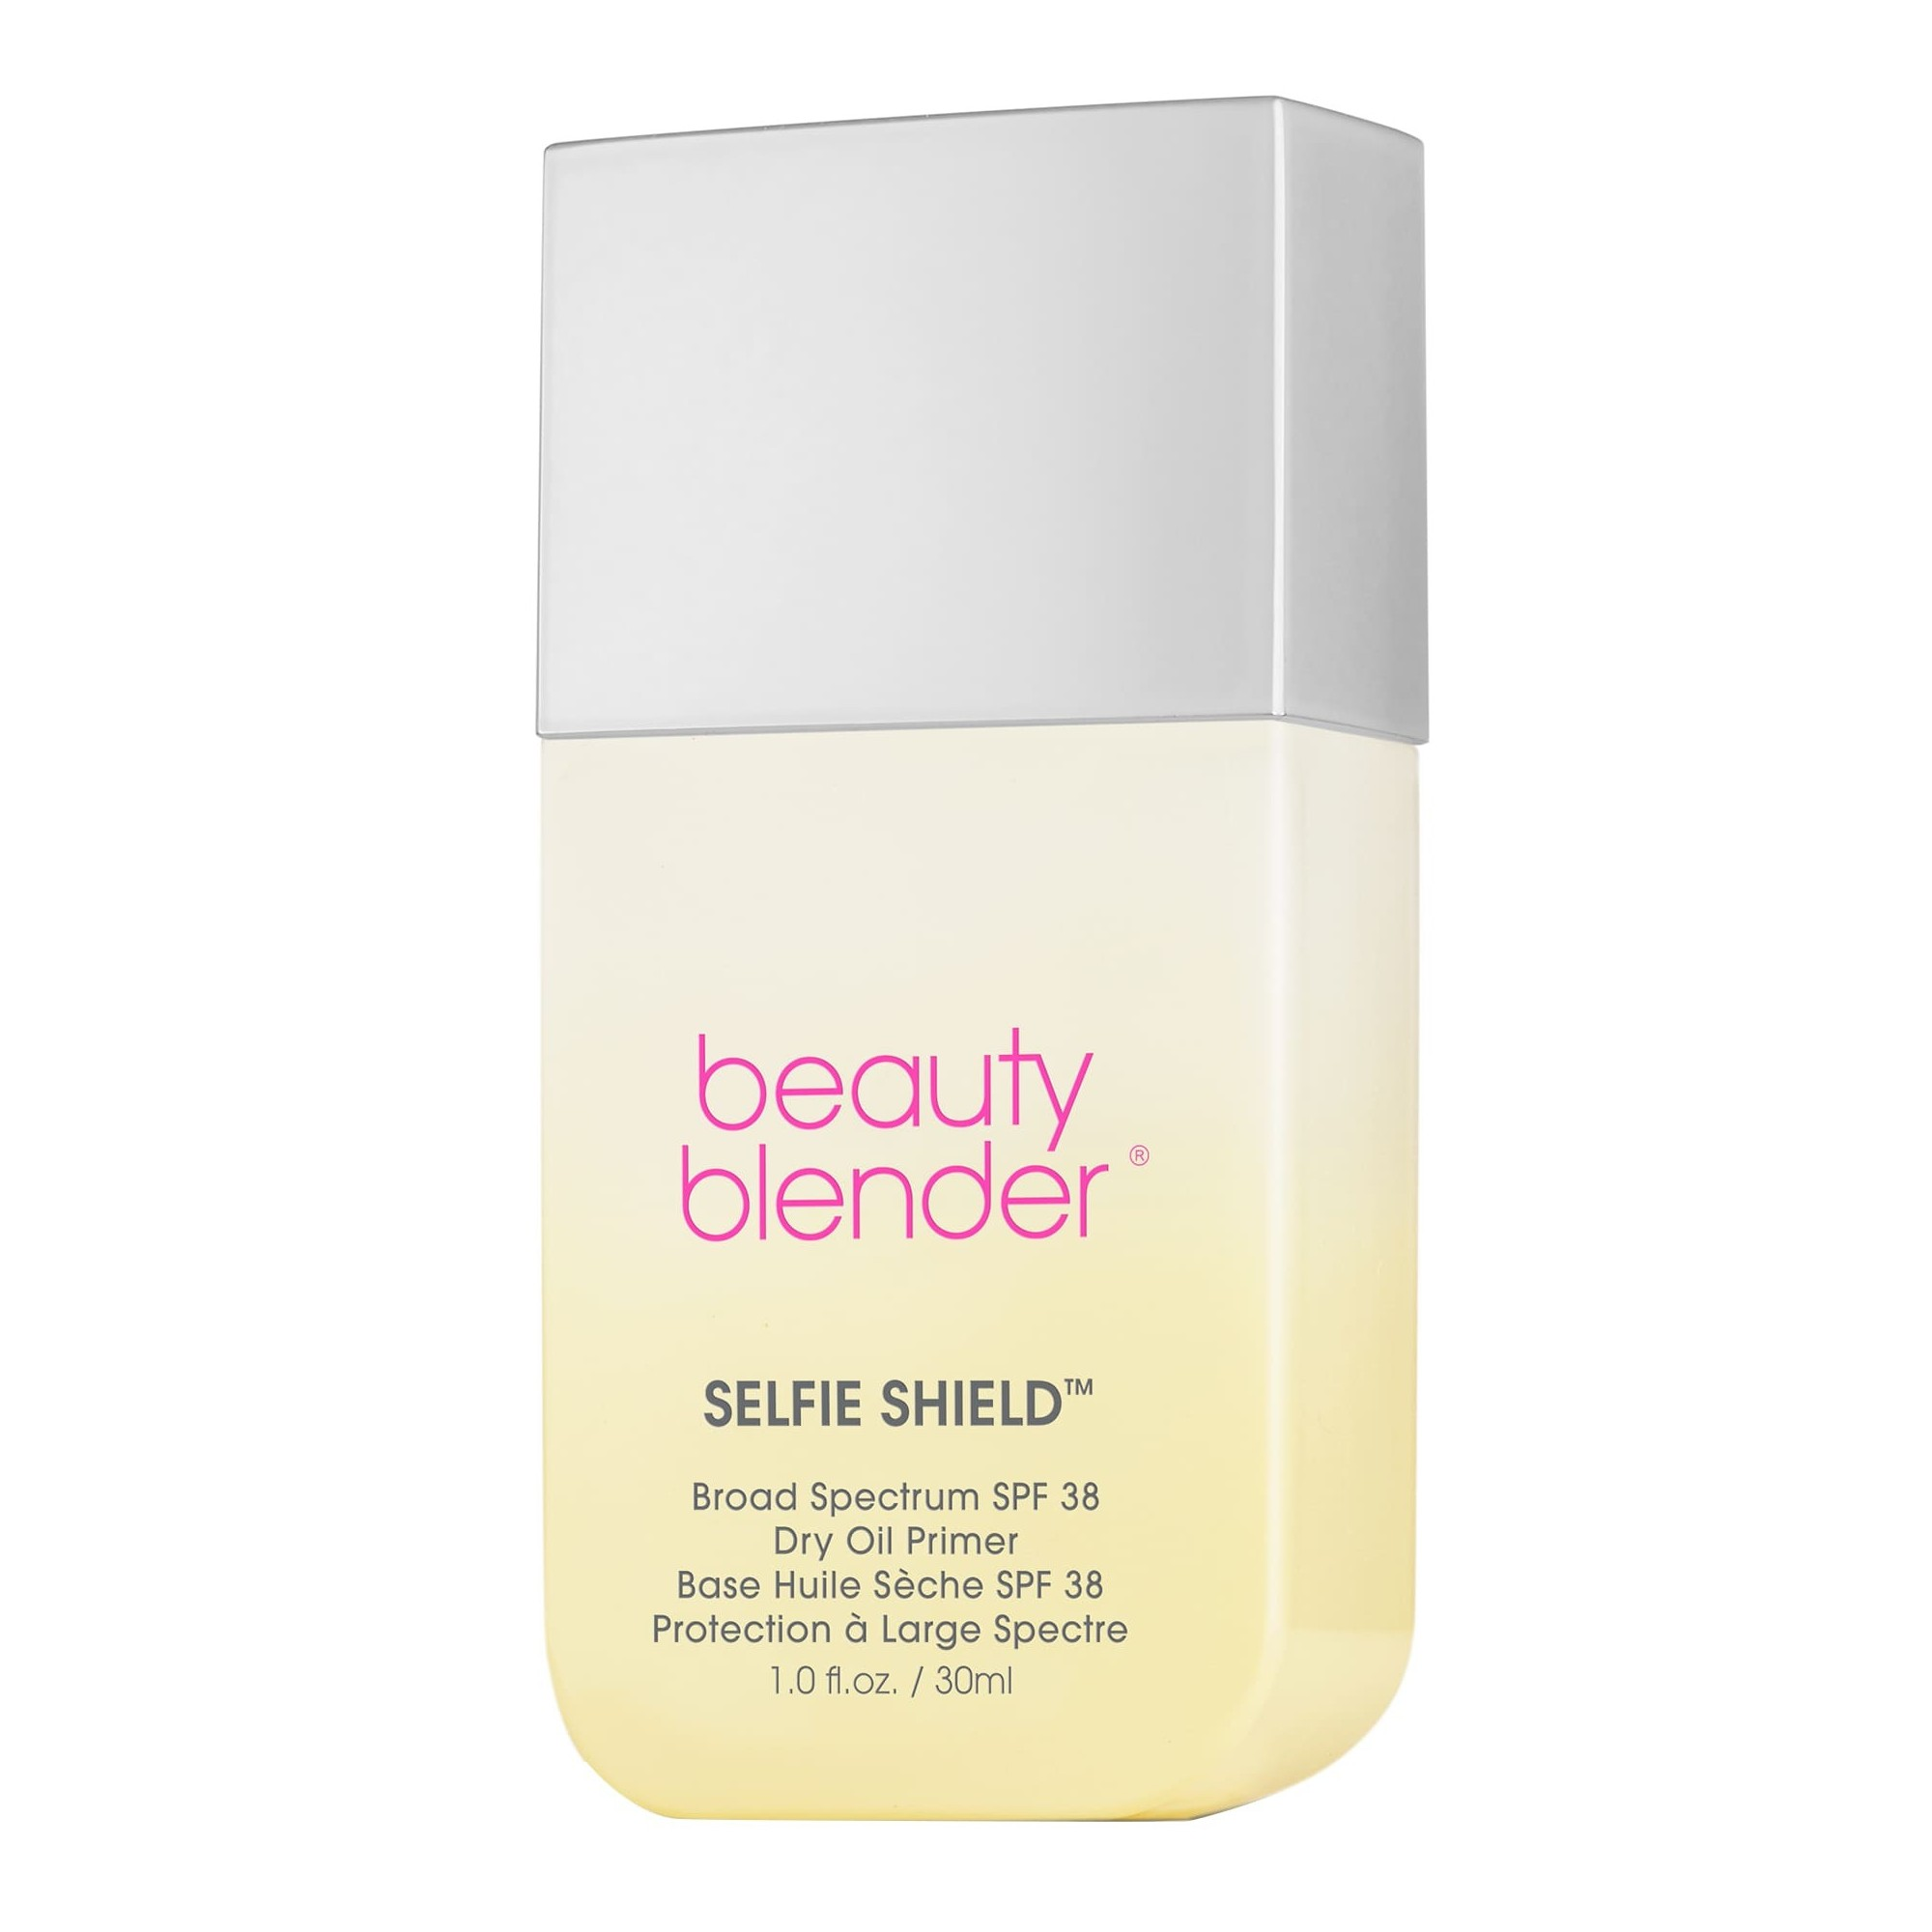 BeautyBlender Selfie Shield Broad Spectrum SPF 38 Dry Oil Primer